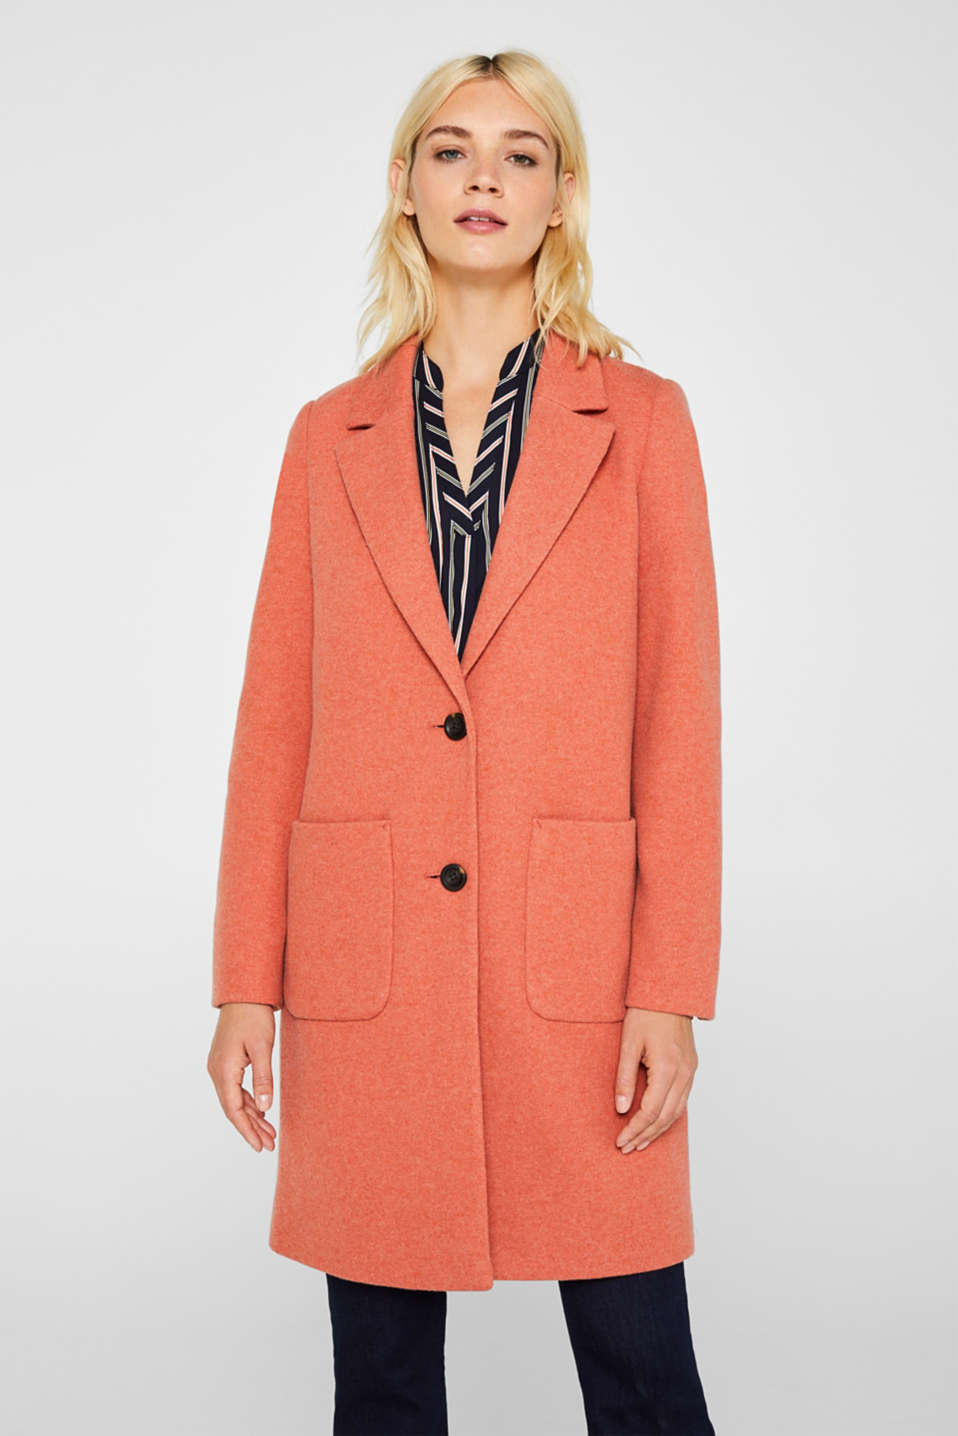 Esprit - Made of blended wool: Coat in a knit look